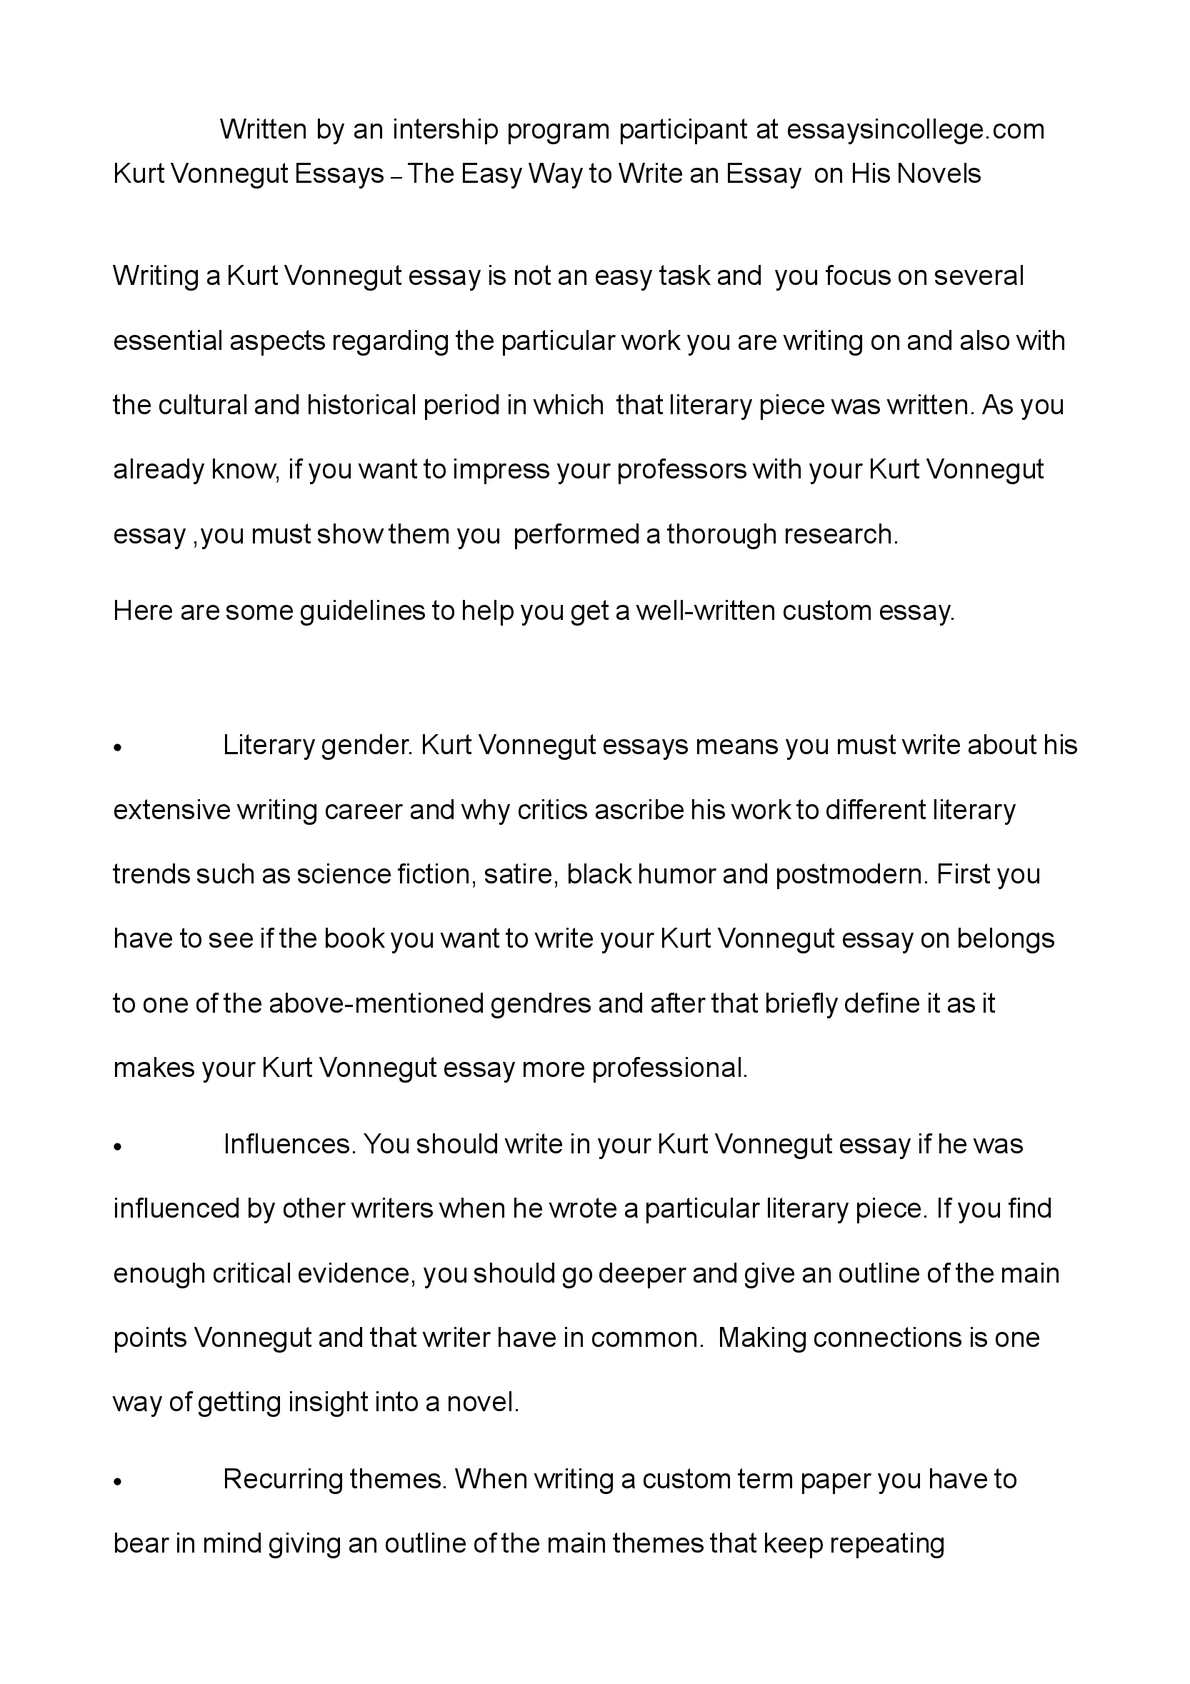 003 Easy Way To Write An Essay P1 Excellent Argumentative How Analytical Example In Ielts Task 2 Full